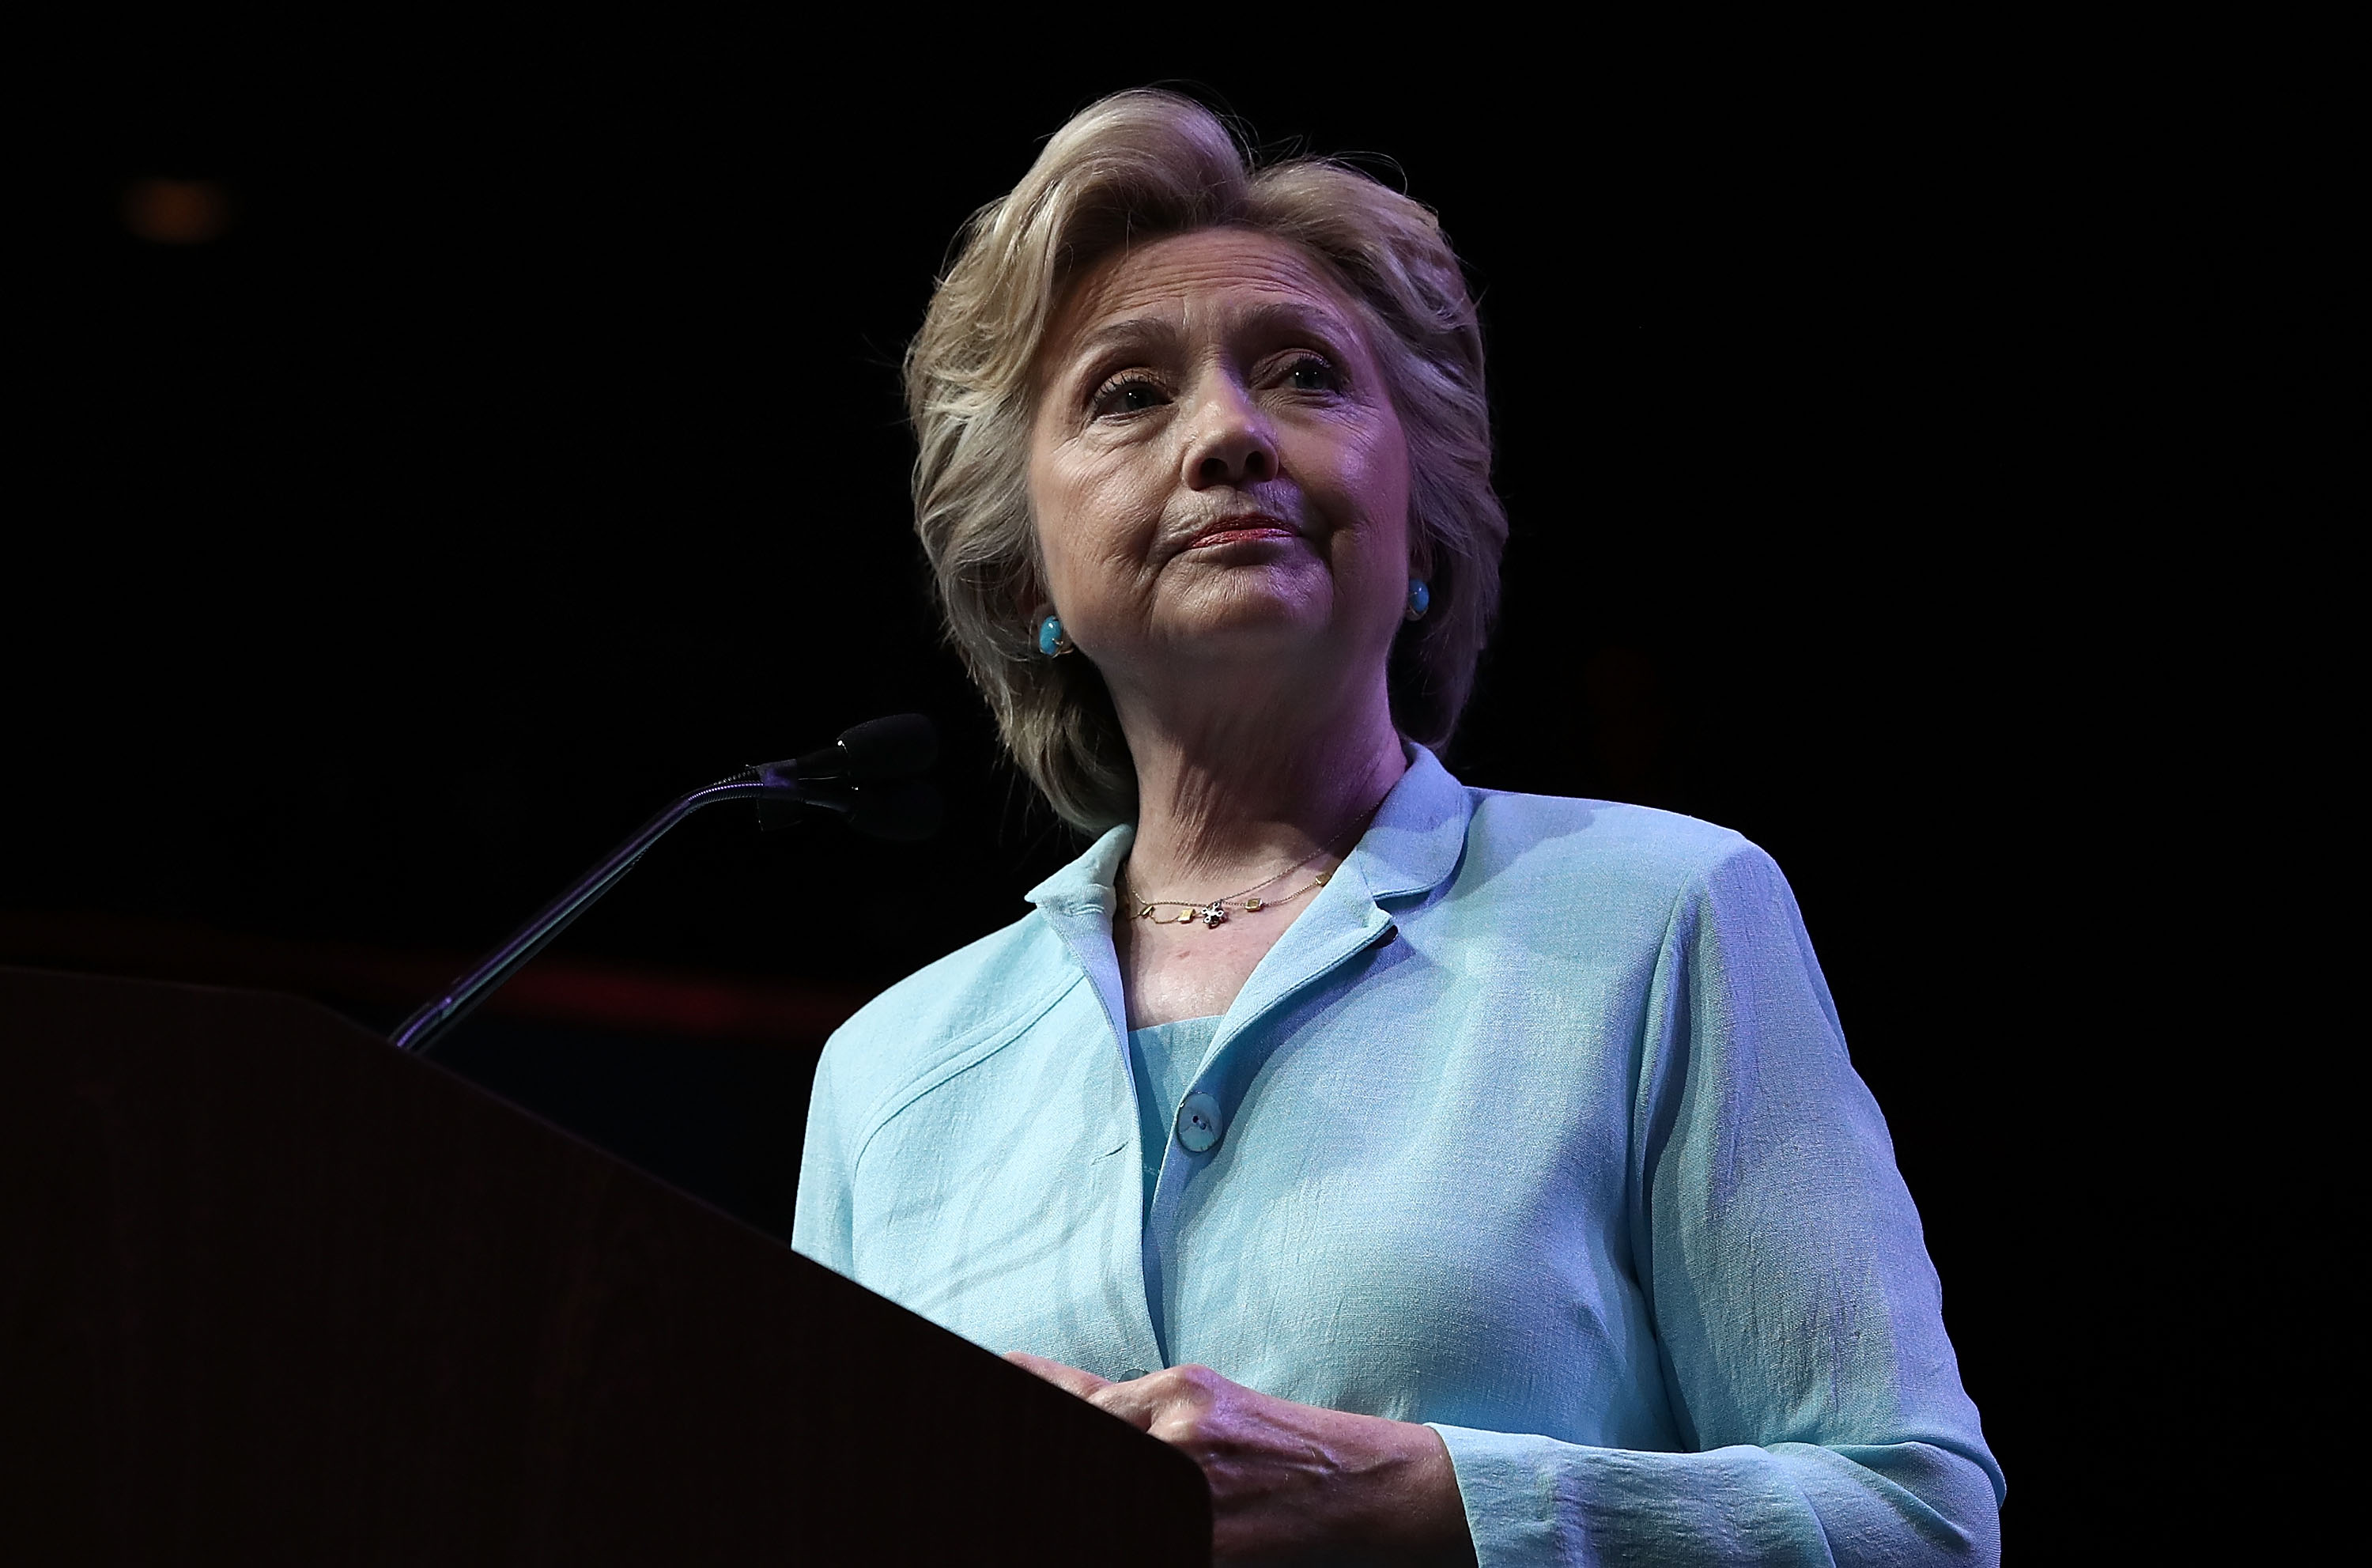 WASHINGTON, DC - AUGUST 05: Democratic presidential nominee Hillary Clinton answers questions after addressing the National Association of Black Journalists and the National Association of Hispanic Journalists August 5, 2016 in Washington, DC.